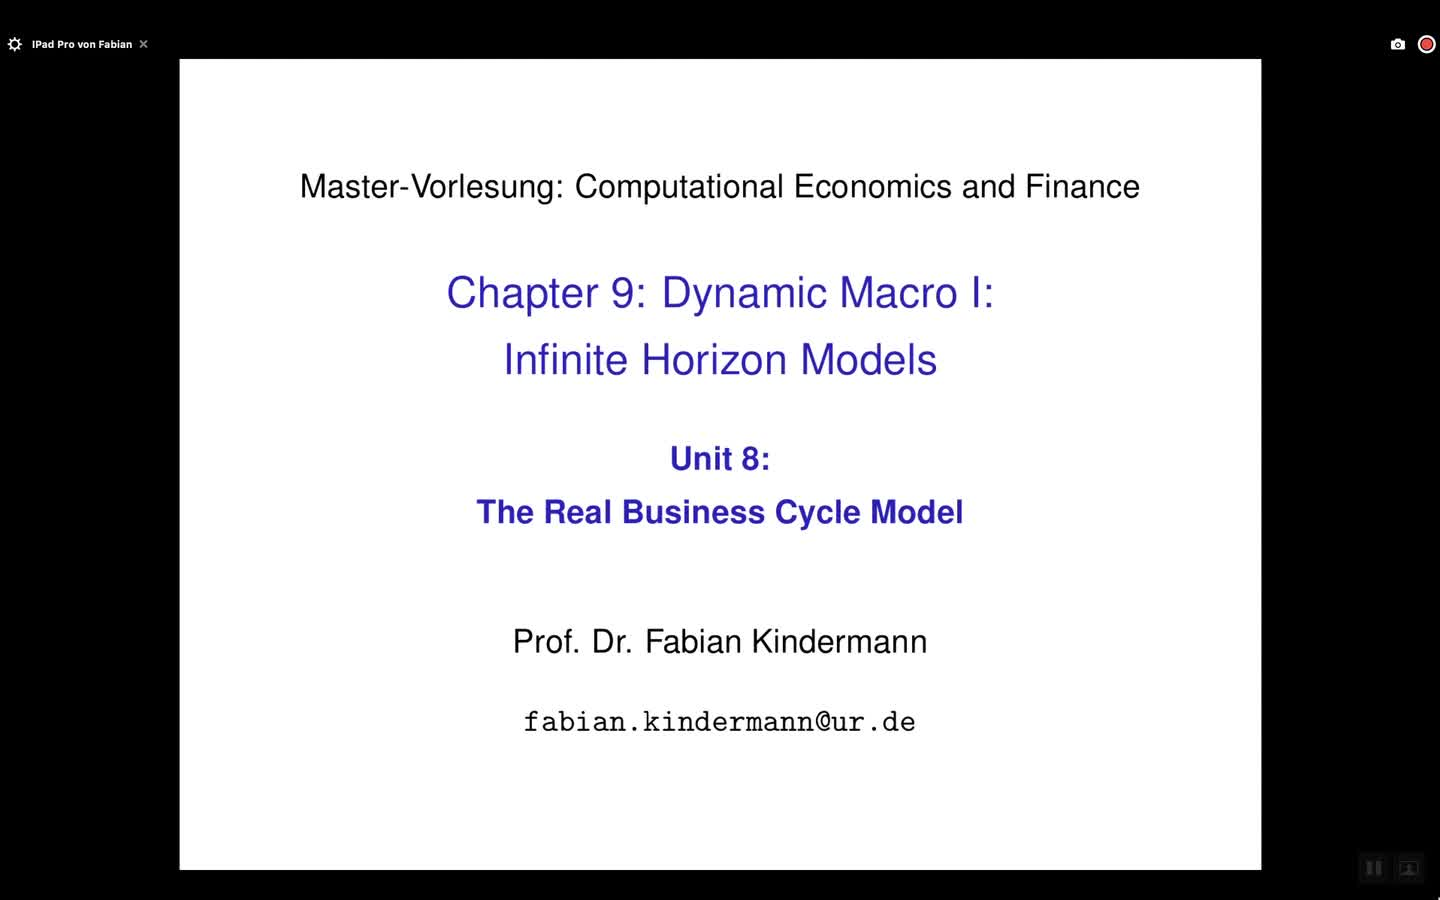 Chapter 9 - Unit 8 - The Real Business Cycle Model